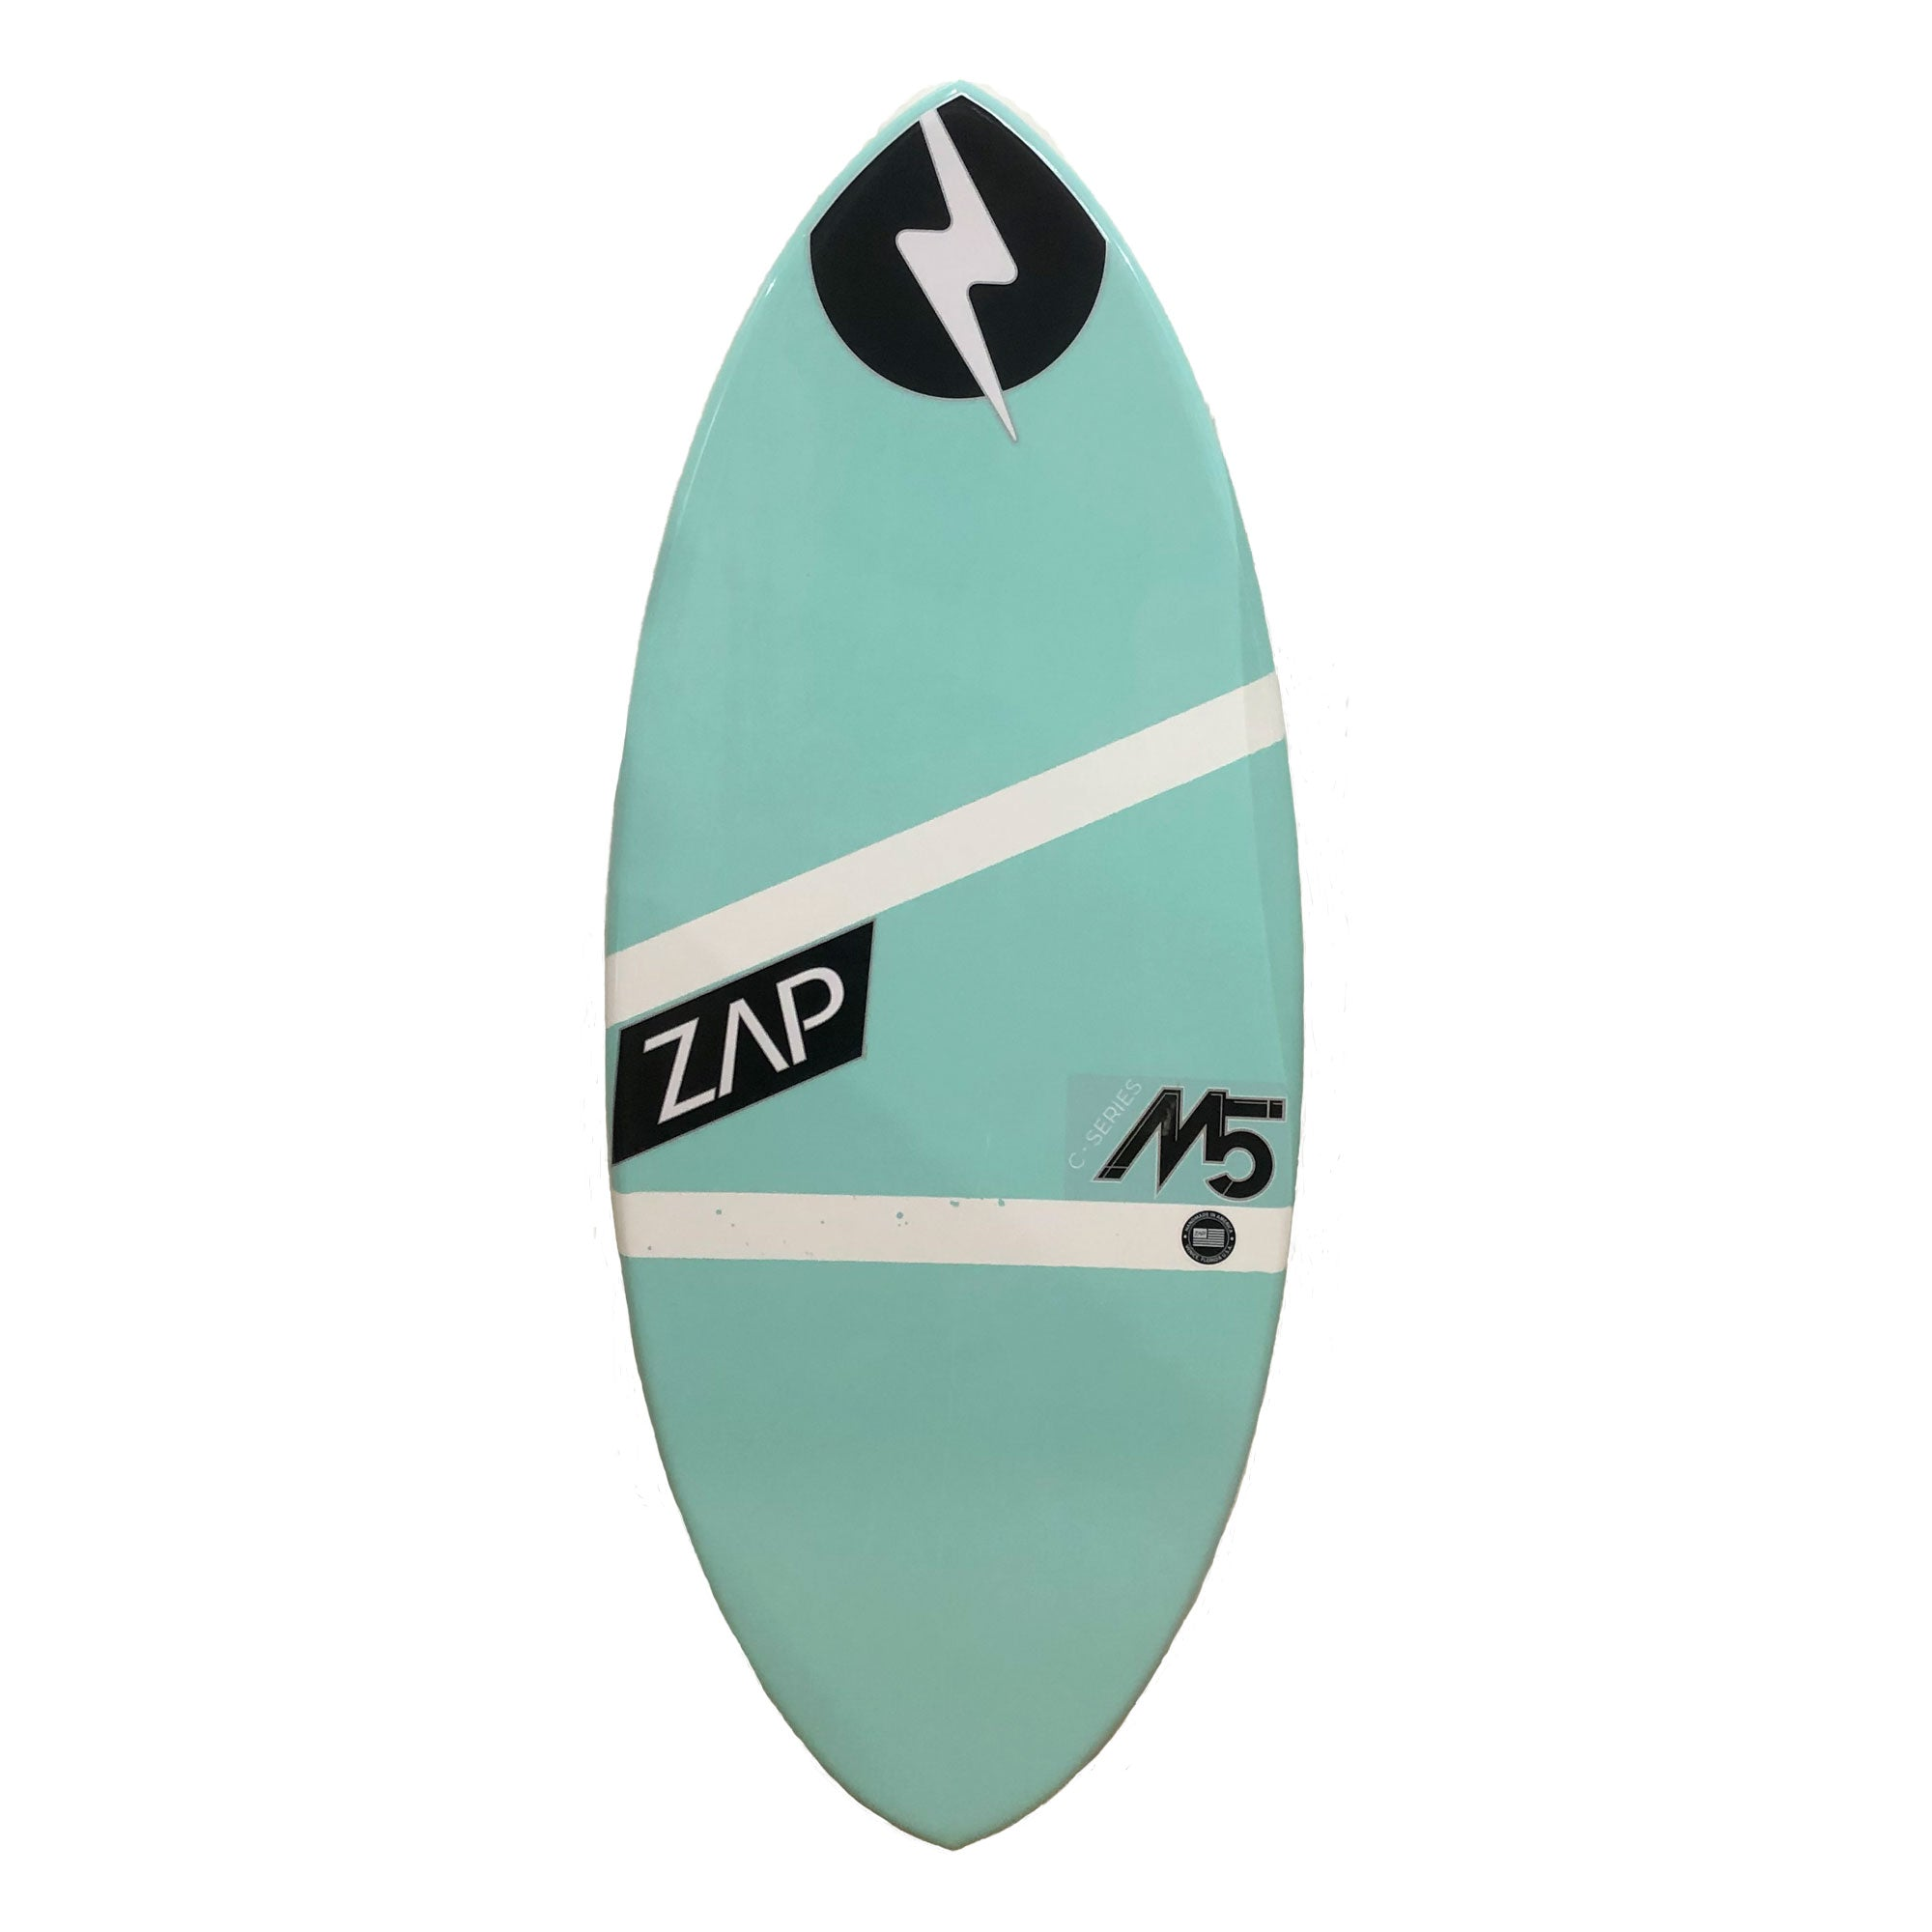 "Zap M5 51"" Skimboard - Light Blue / White Stripes"